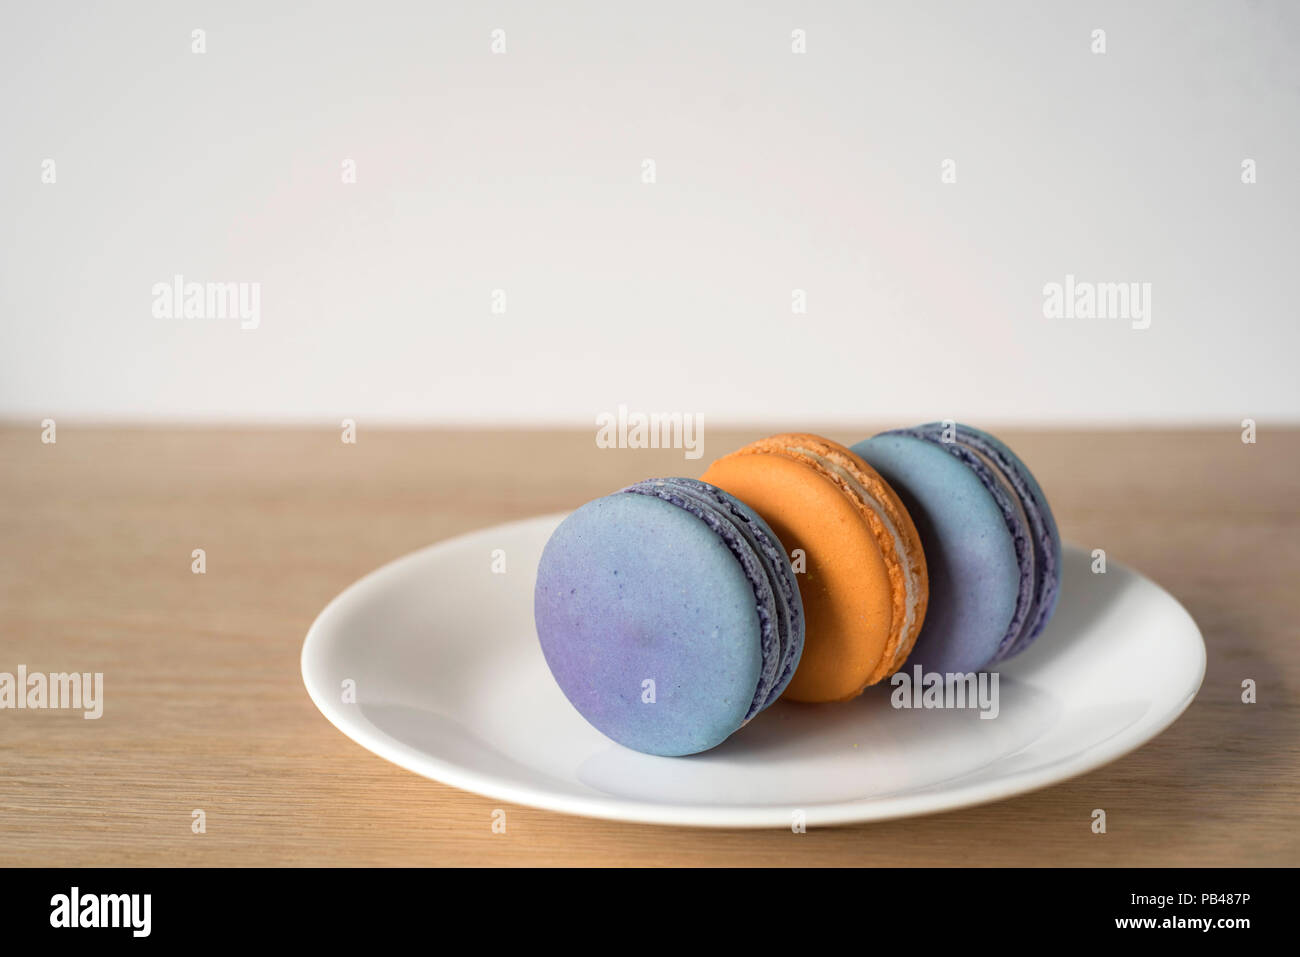 Three Orange and Blue Macarons Sitting on Their Sides on a Plate - Stock Image